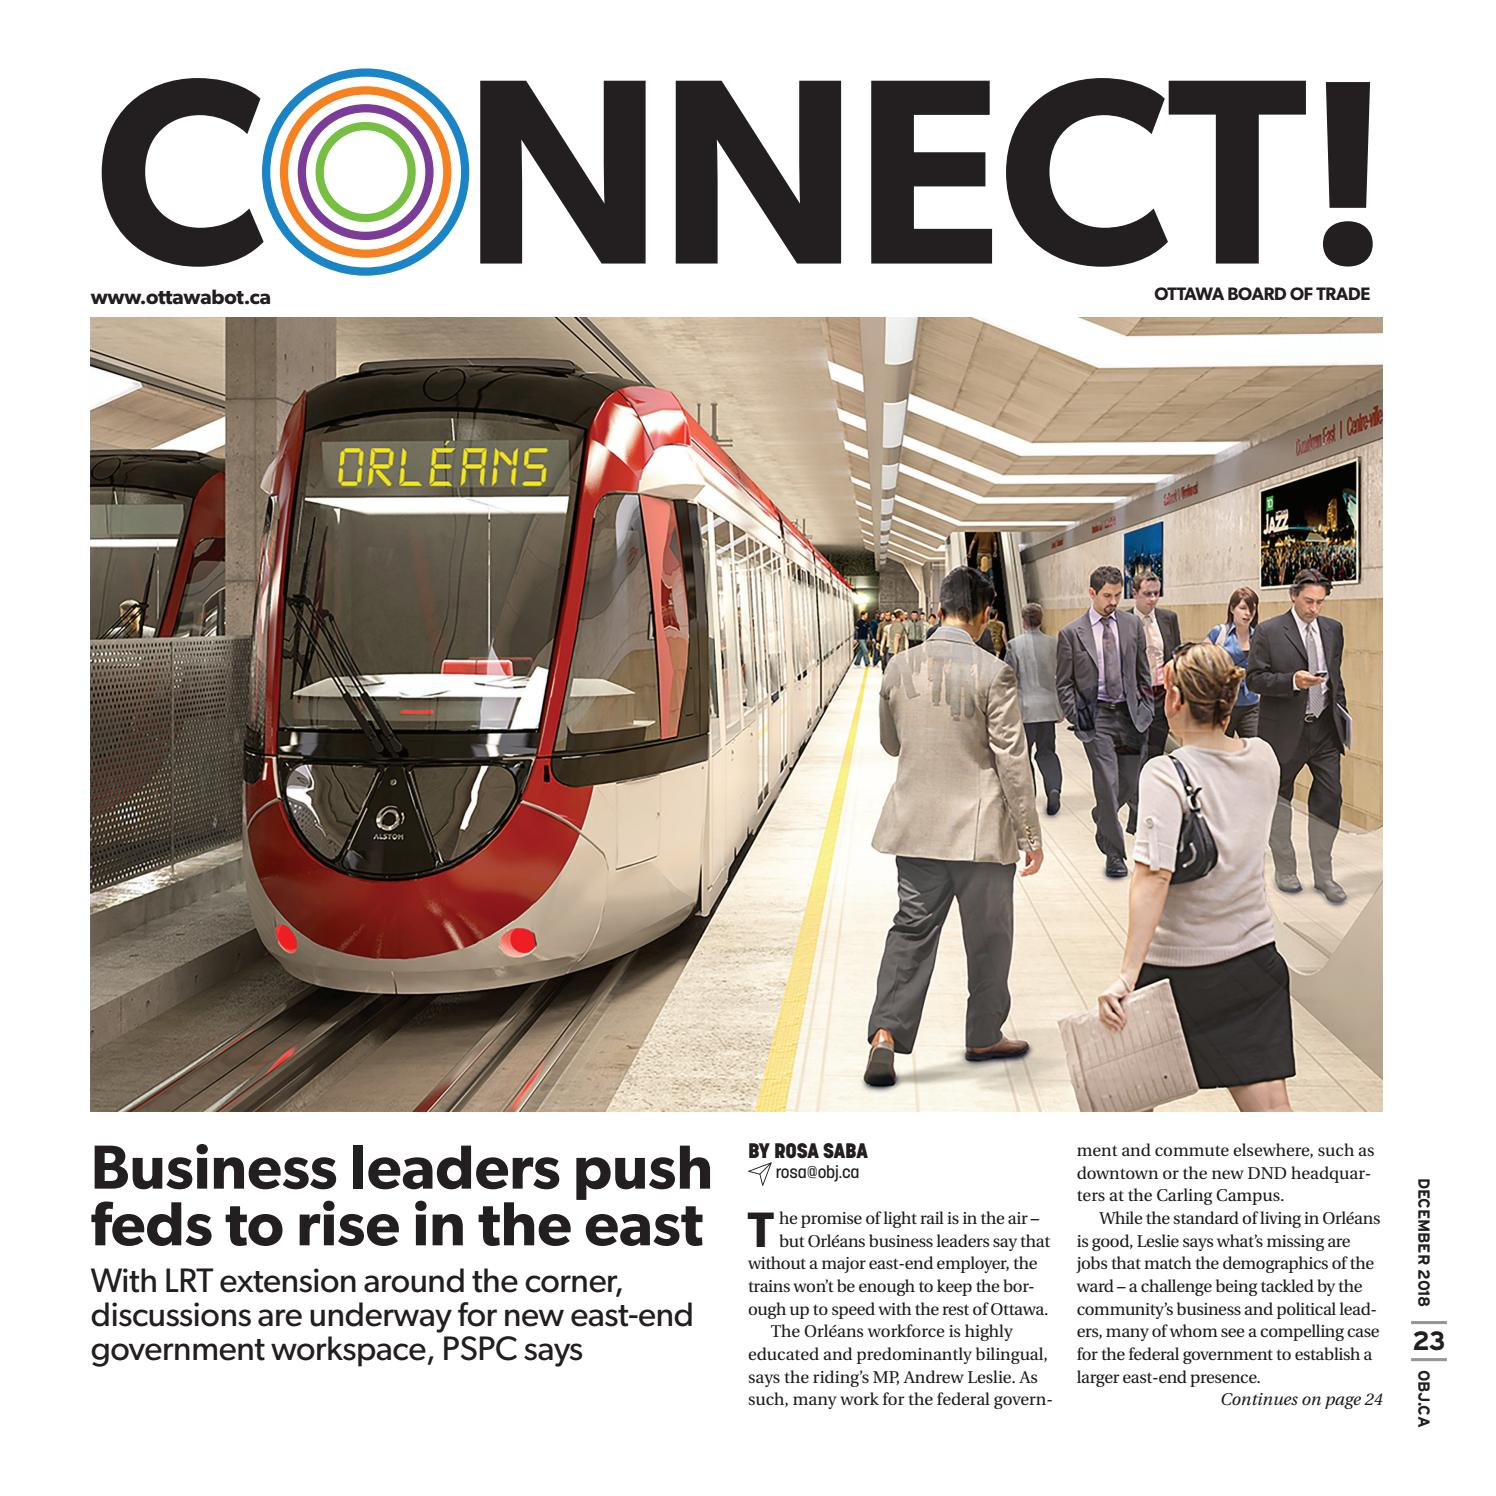 OBOT Connect! December 2018 by Great River Media inc  - issuu